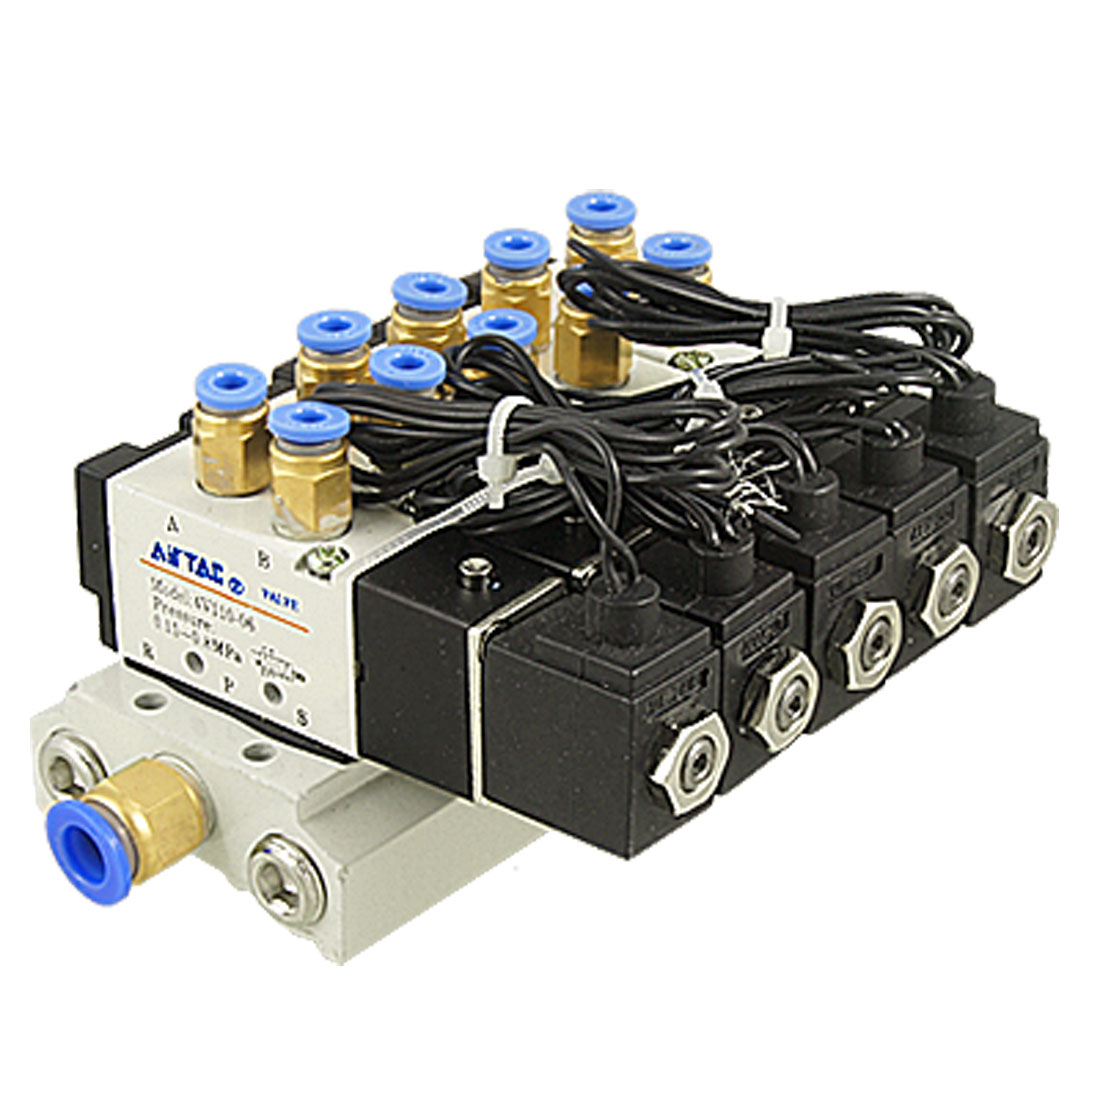 DC 24V 5/32 Quick Fitting 2 Position 5 Way 5 Solenoid Valve w Base Muffler 5 way pilot solenoid valve sy3220 4d 01